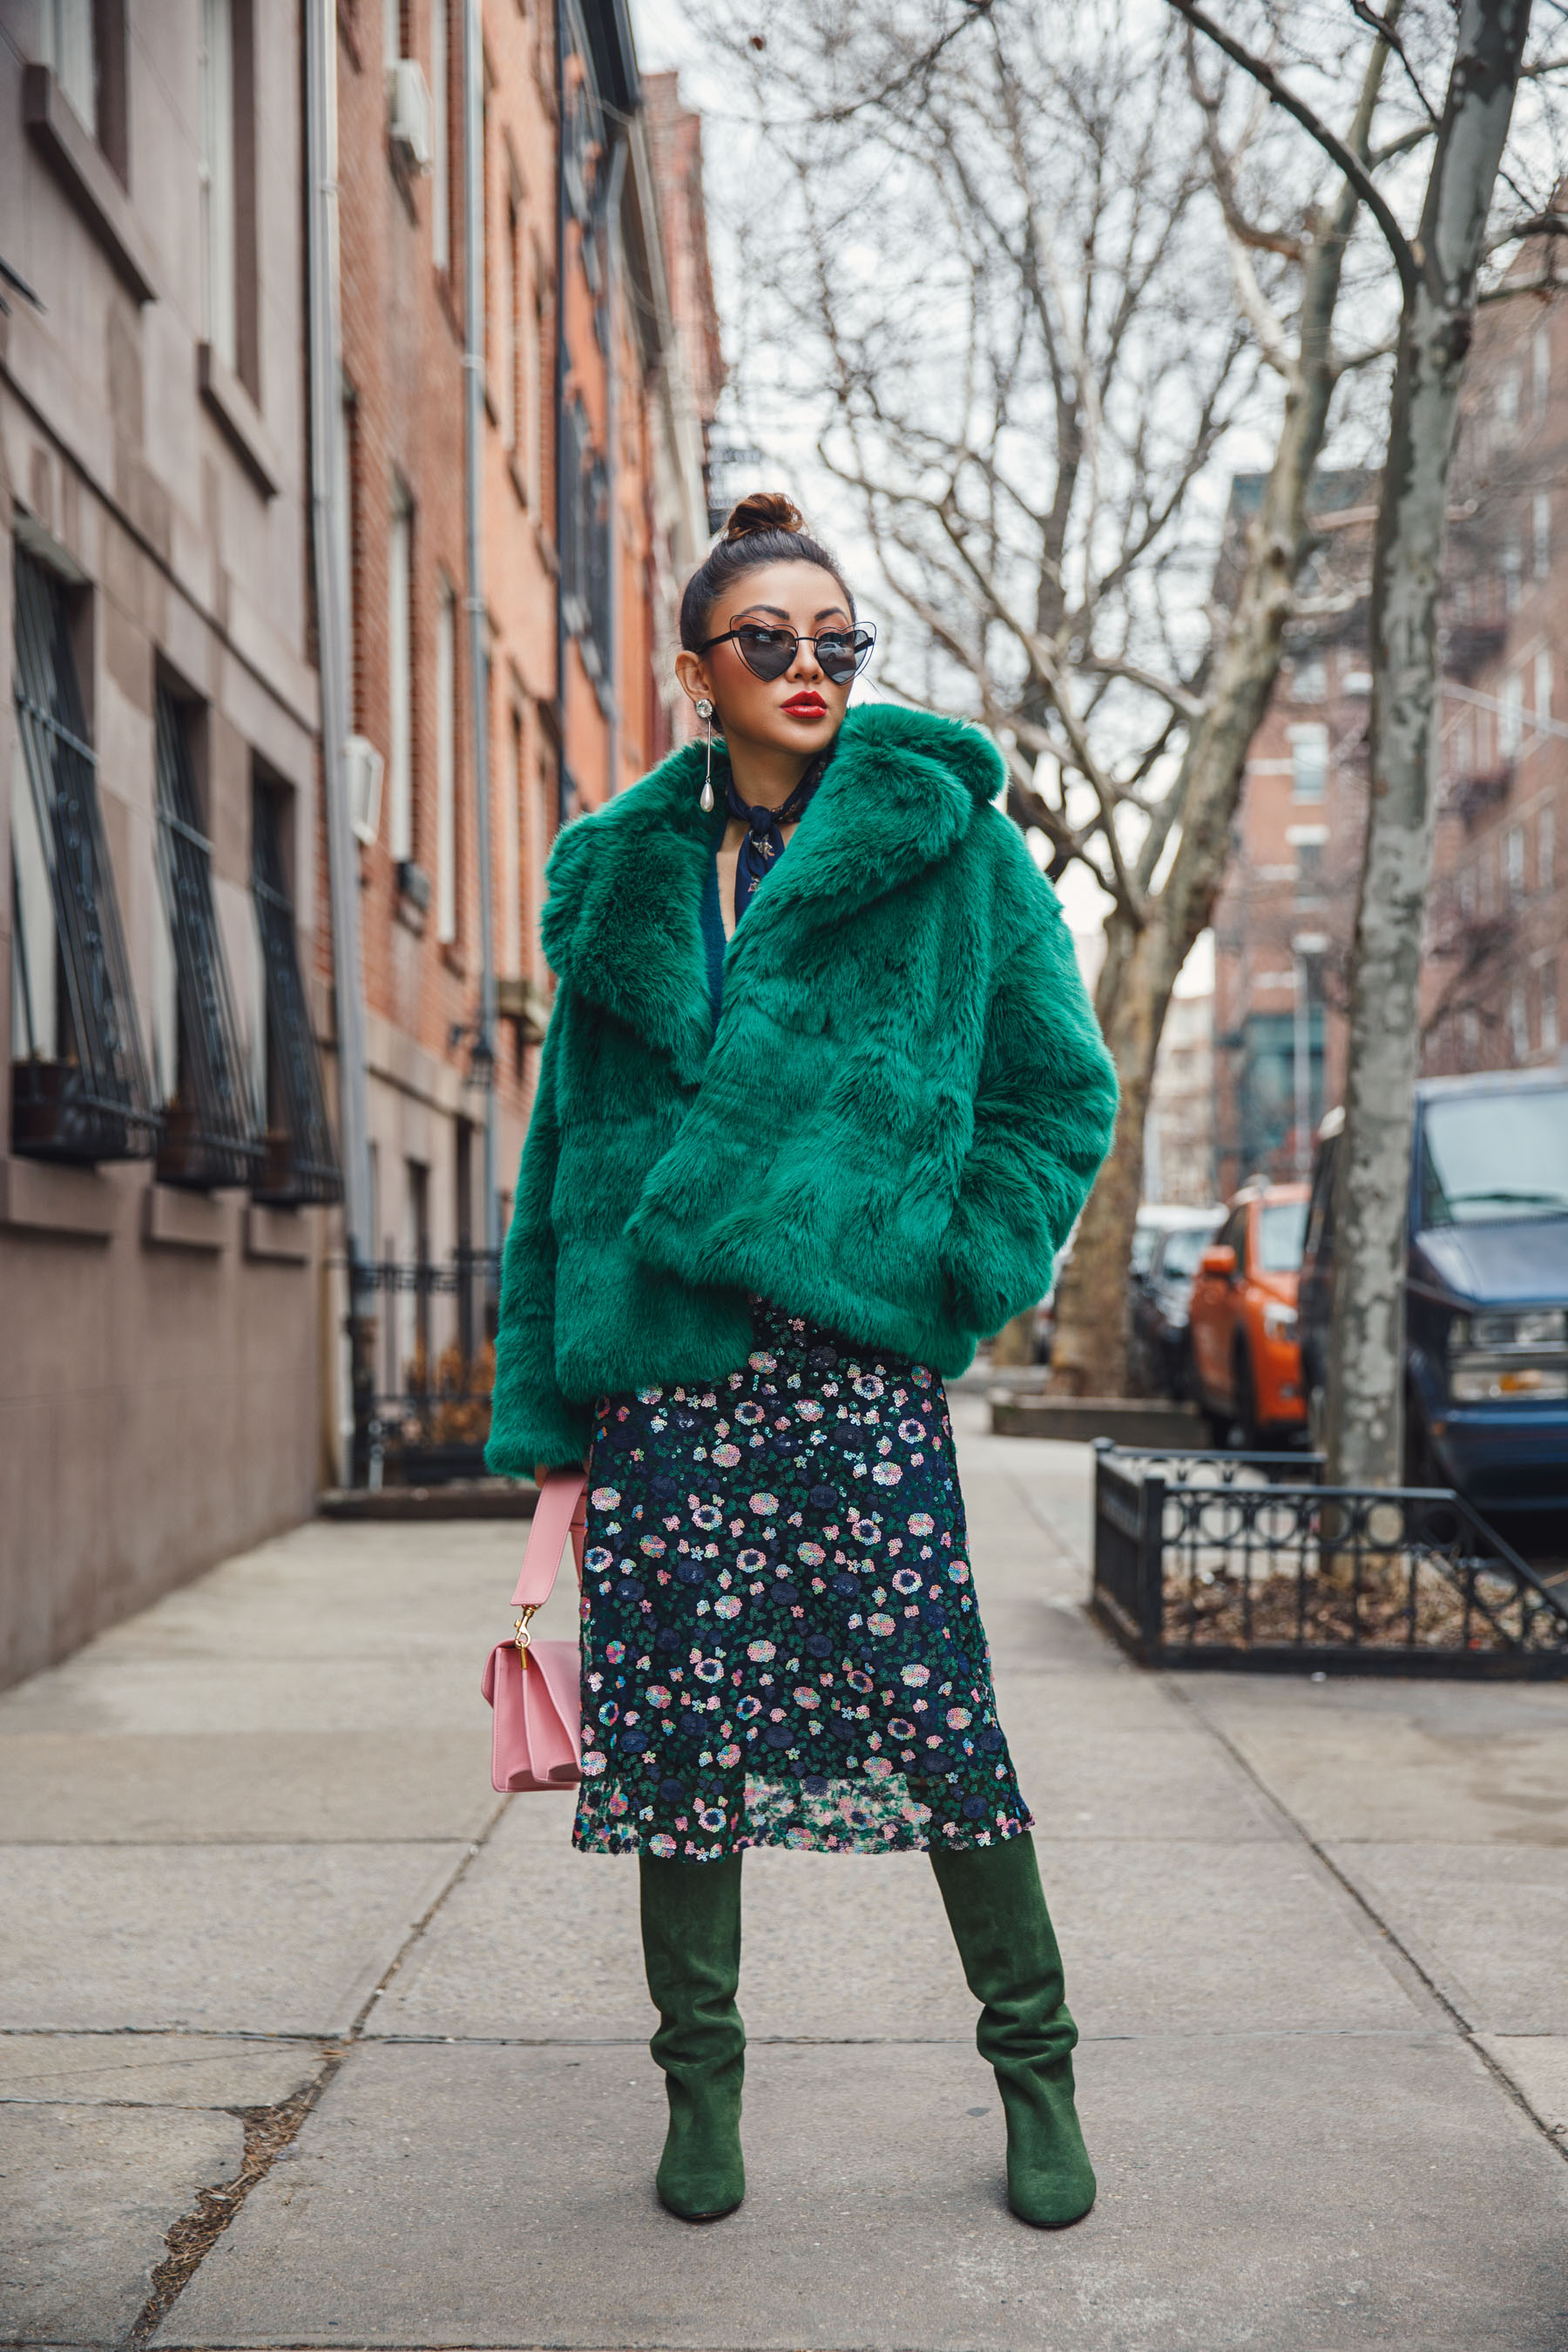 NYFW 2018 - Green Fur Coat, Monochromatic Green Look // Notjessfashion.com